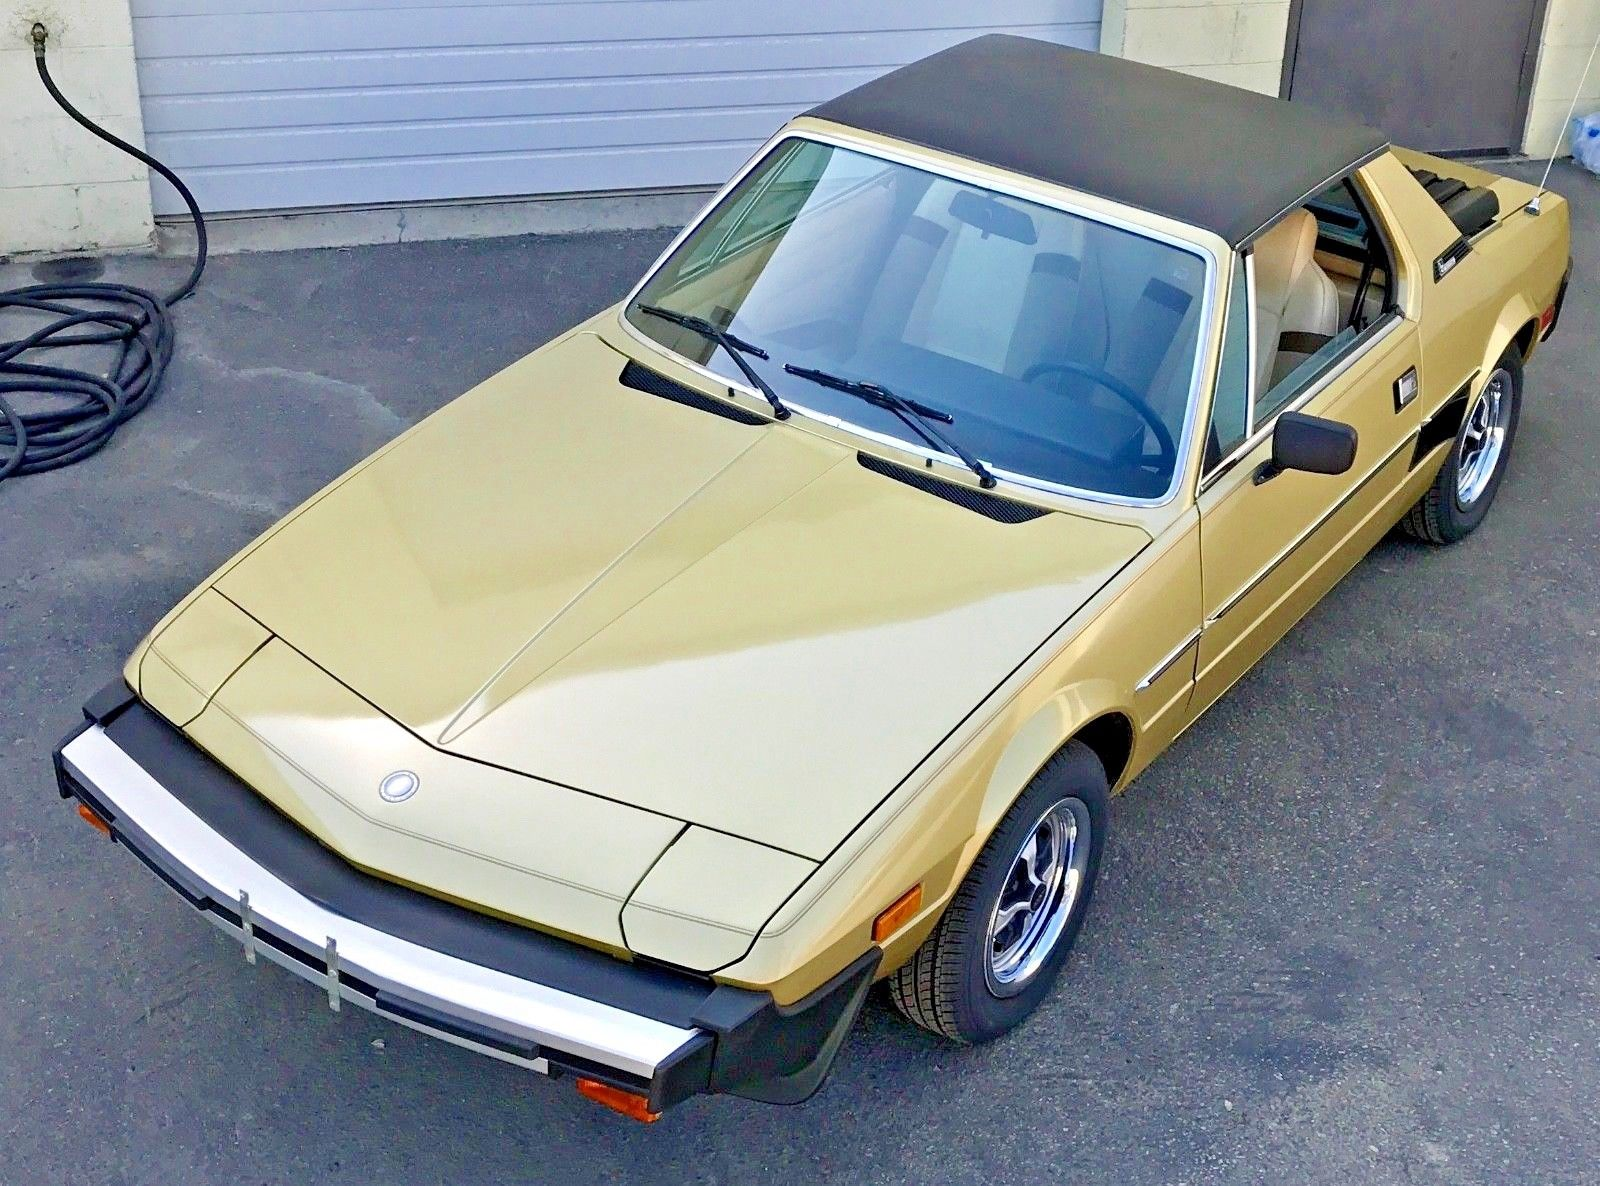 1979 Fiat X1/9 front 3/4